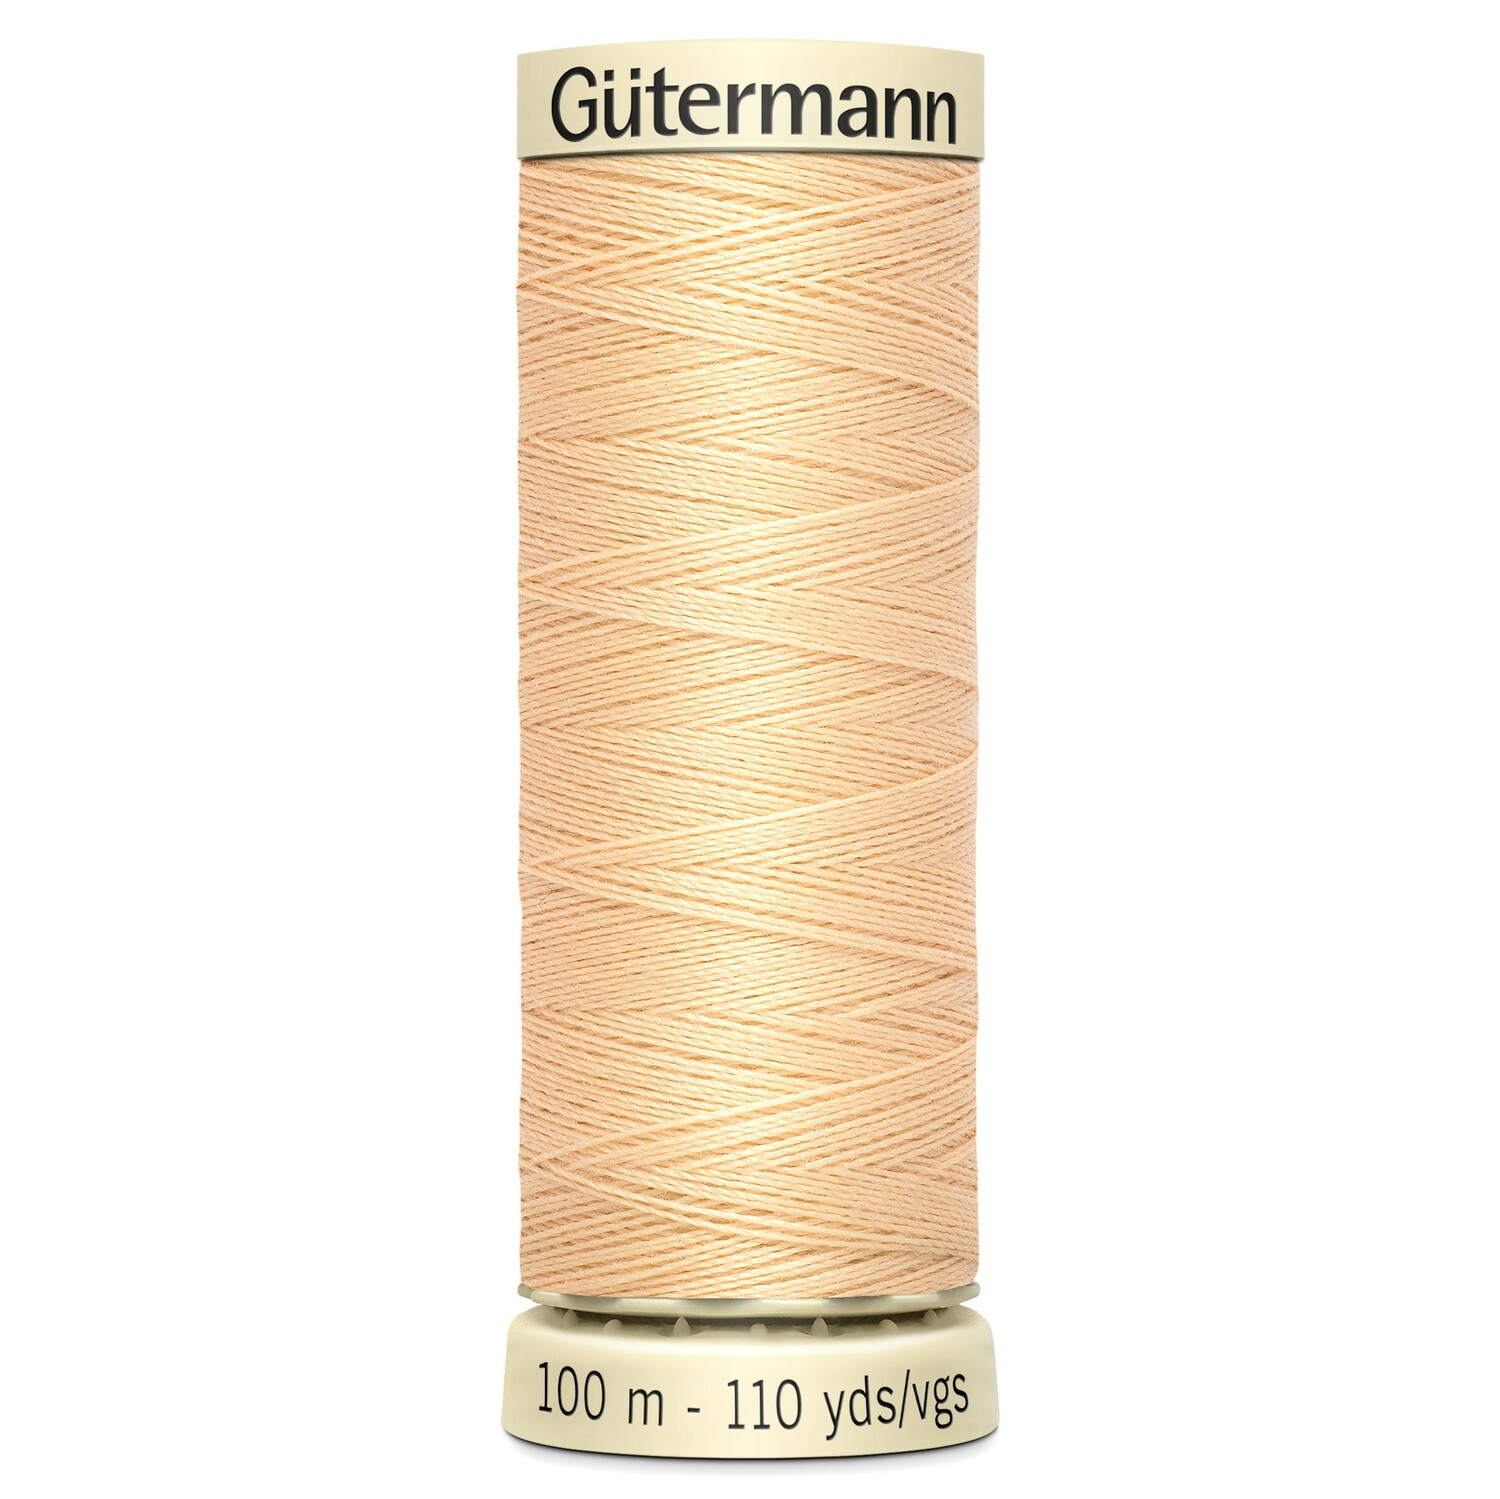 Gutermann Sew-All thread 6